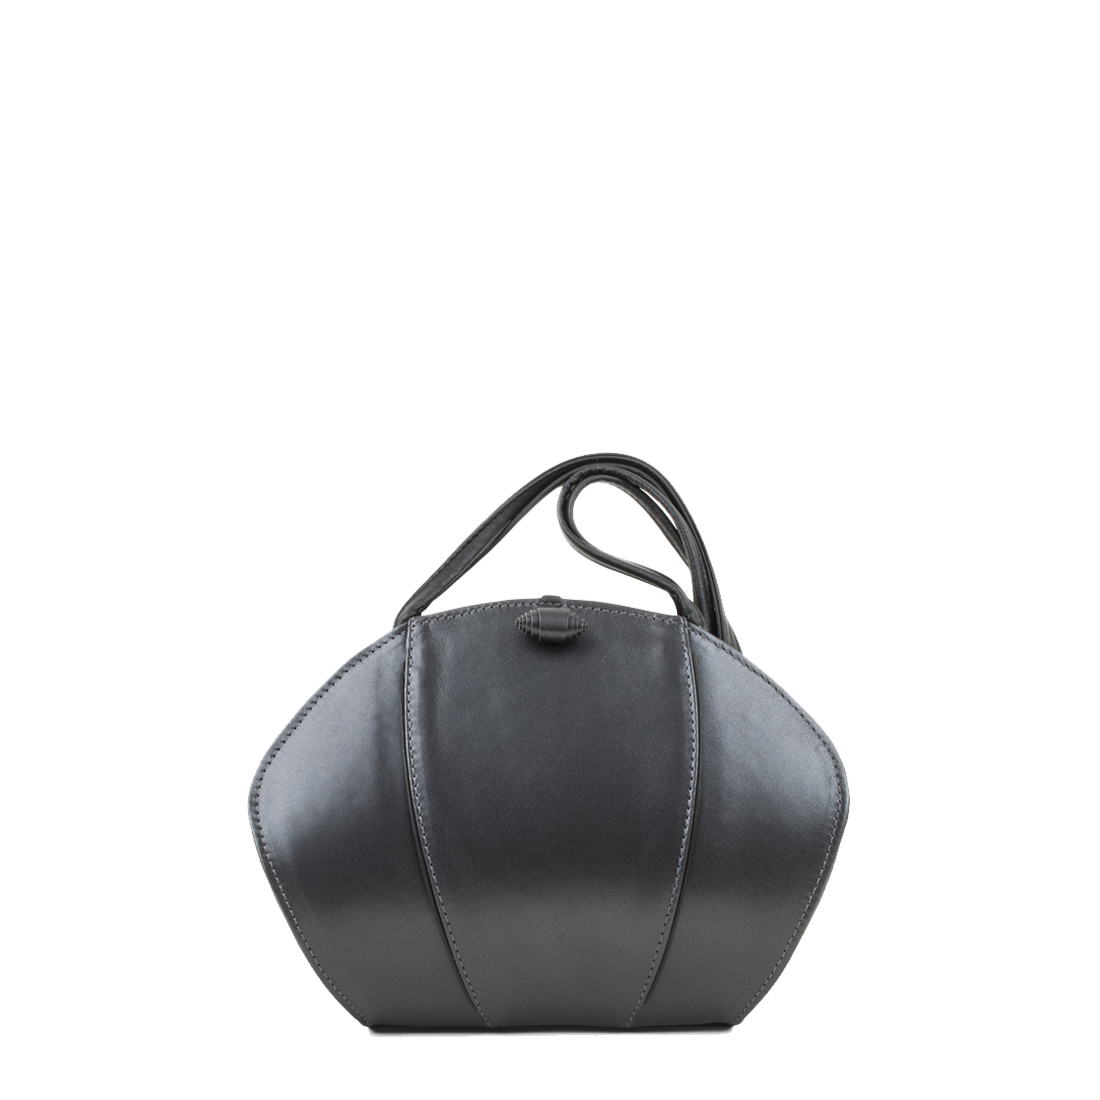 Lola Anthracite Pearl Shoulder Bag